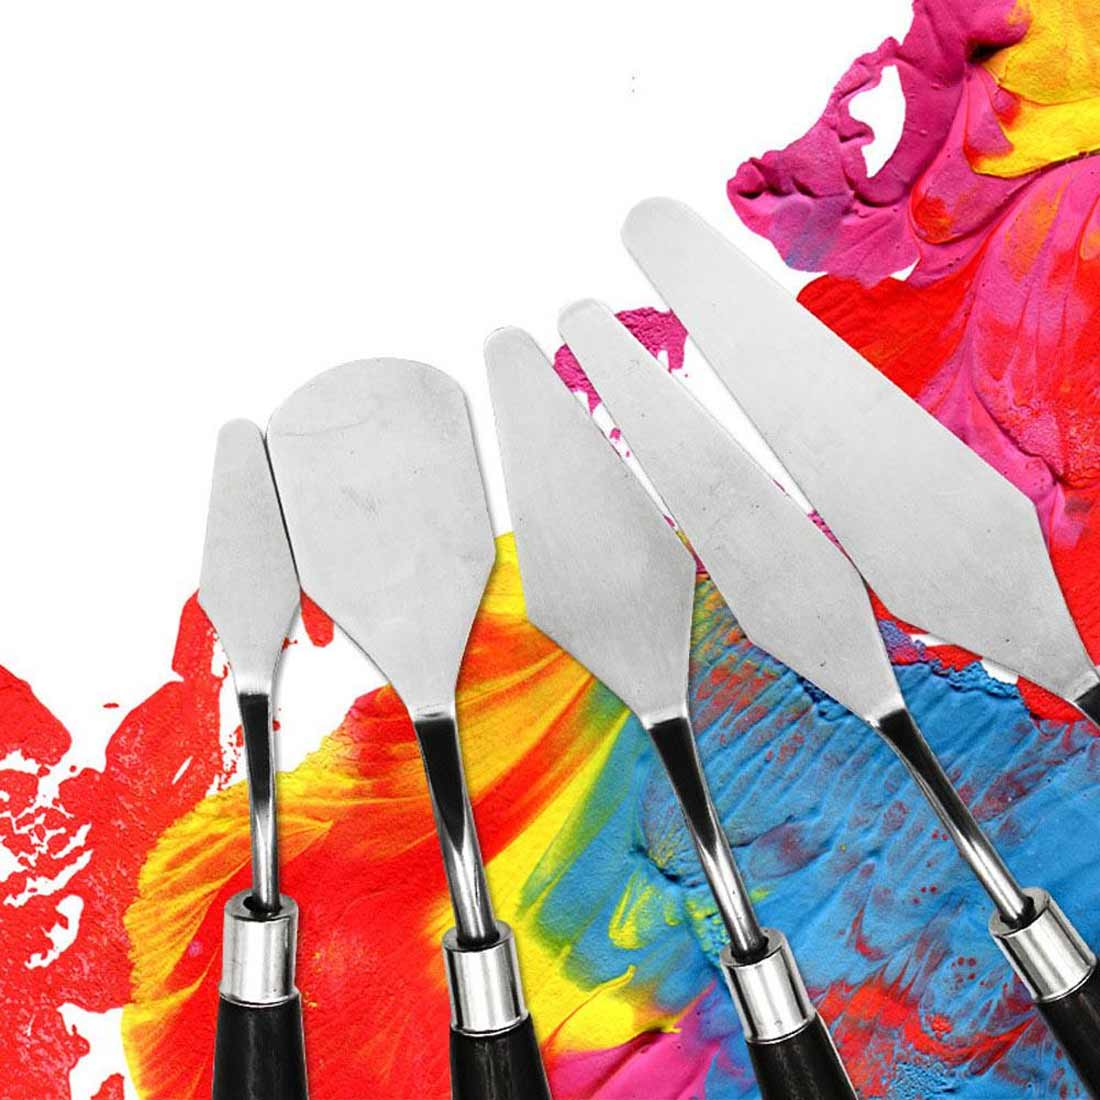 5pcs/set Artist Painting Palette Knife For Thick Oil Painting Spatula Stainless Steel Painting Palette Arts Painting Tool Set